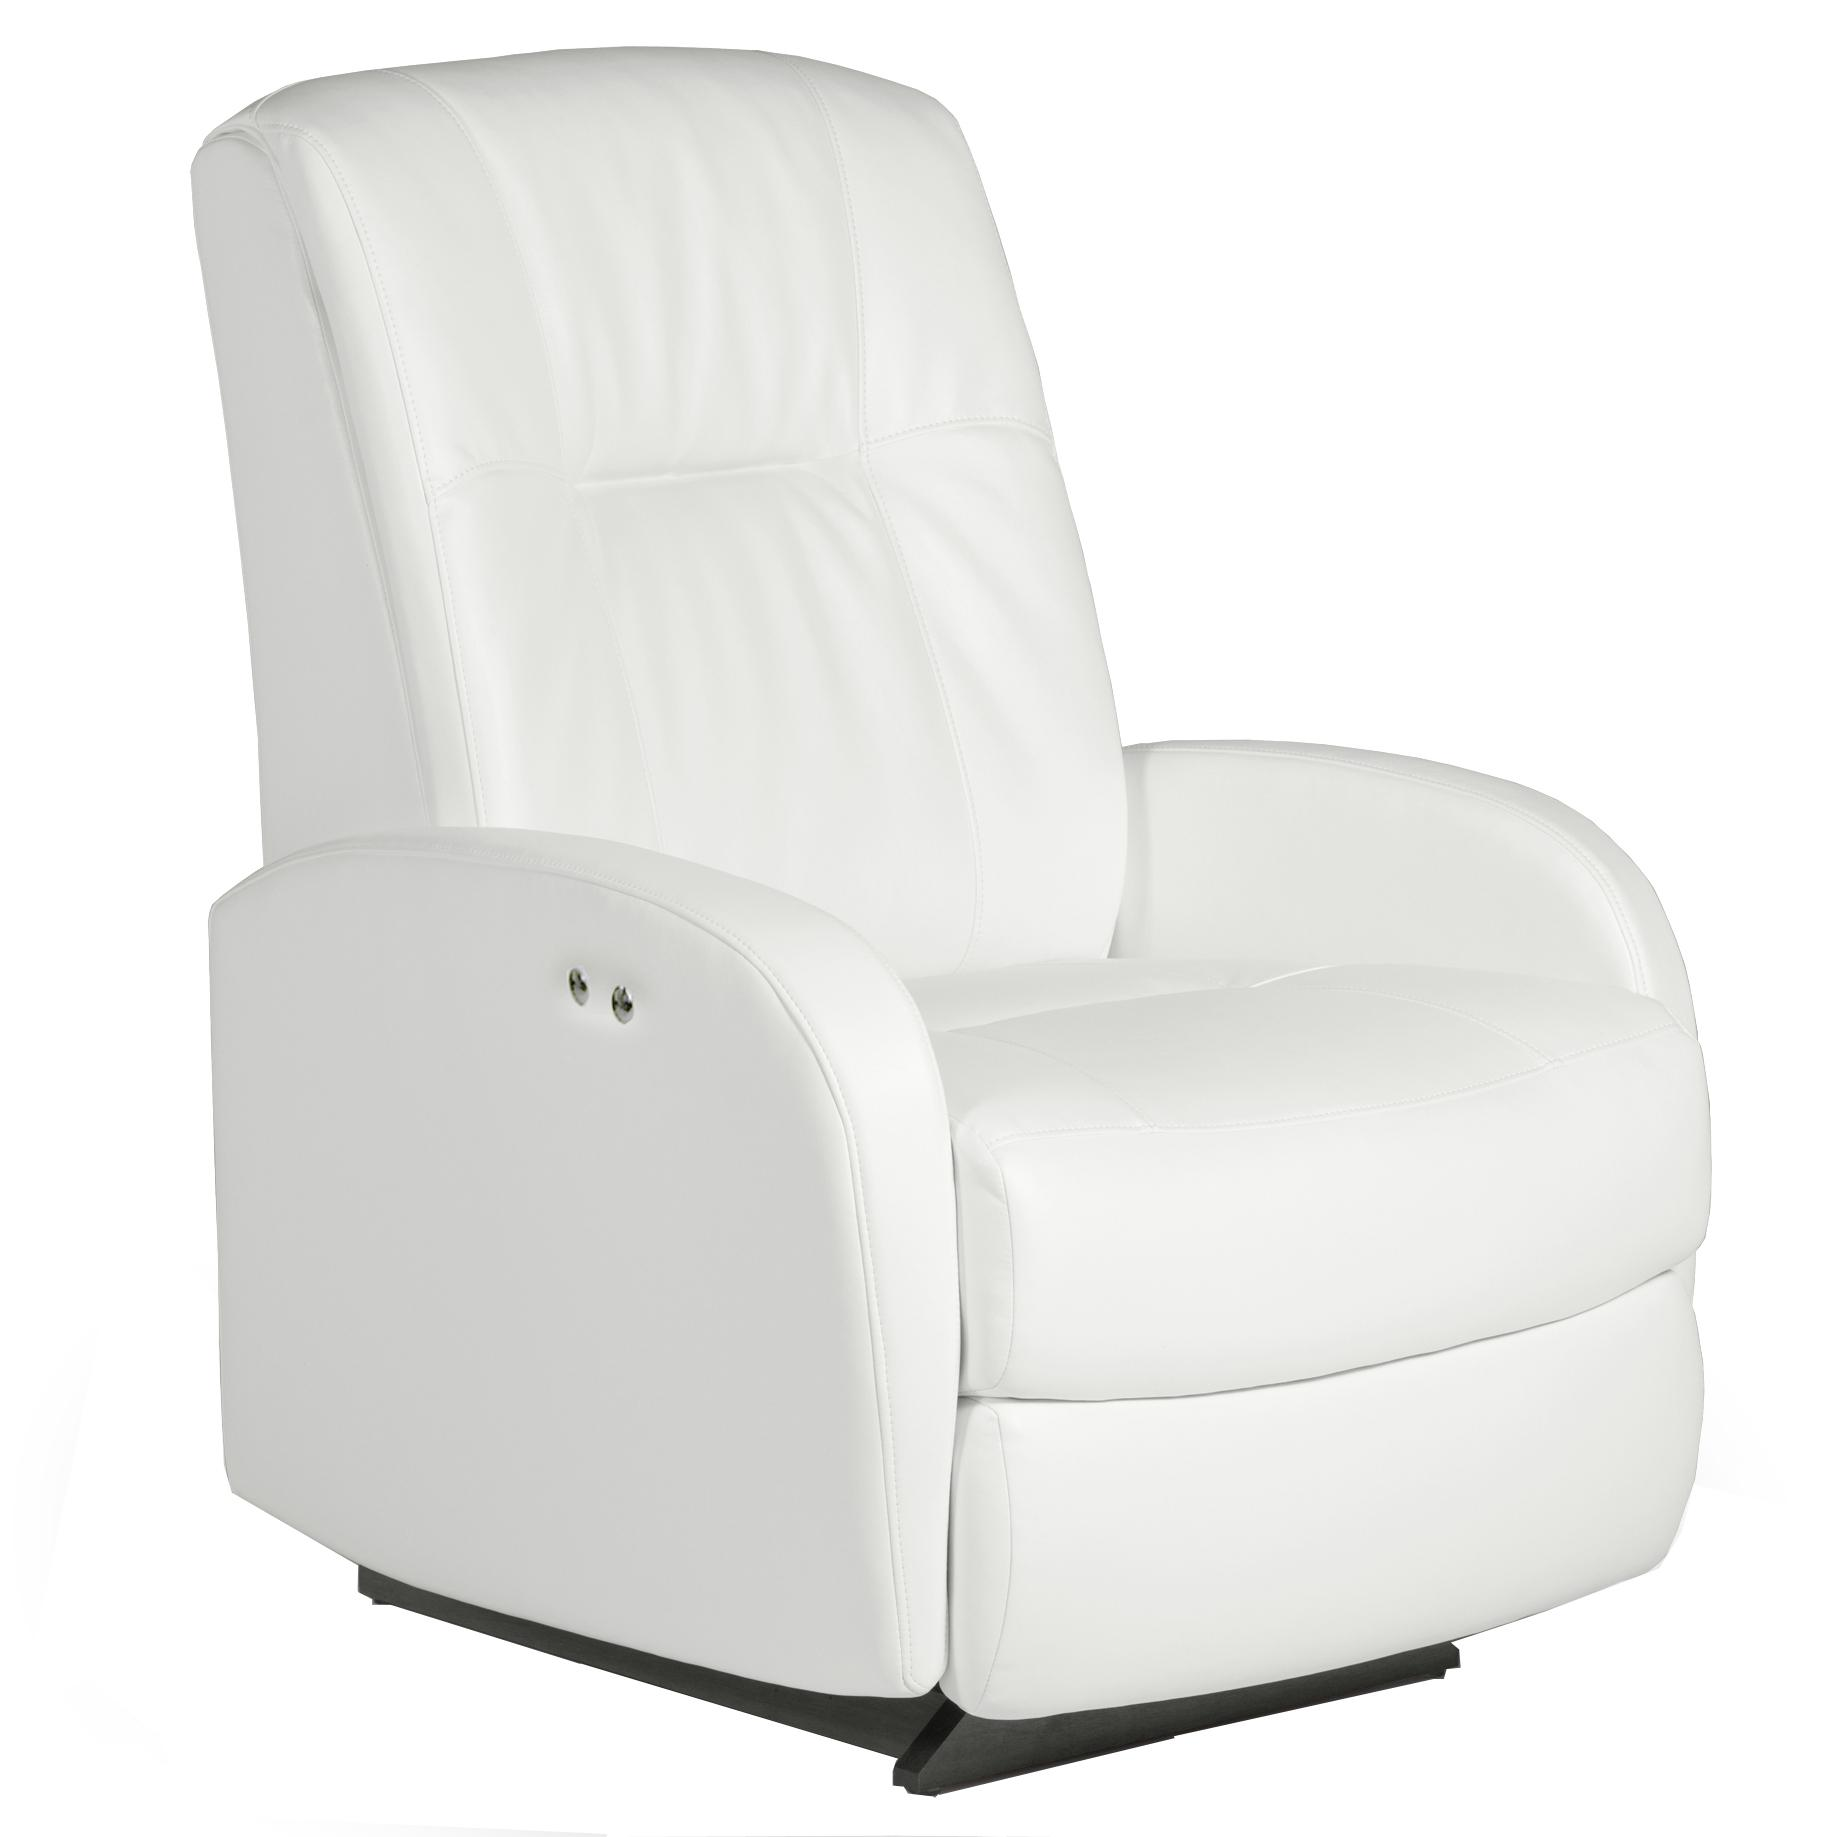 Rooms To Go Swivel Chair Best Home Furnishings Recliners Petite Ruddick Swivel